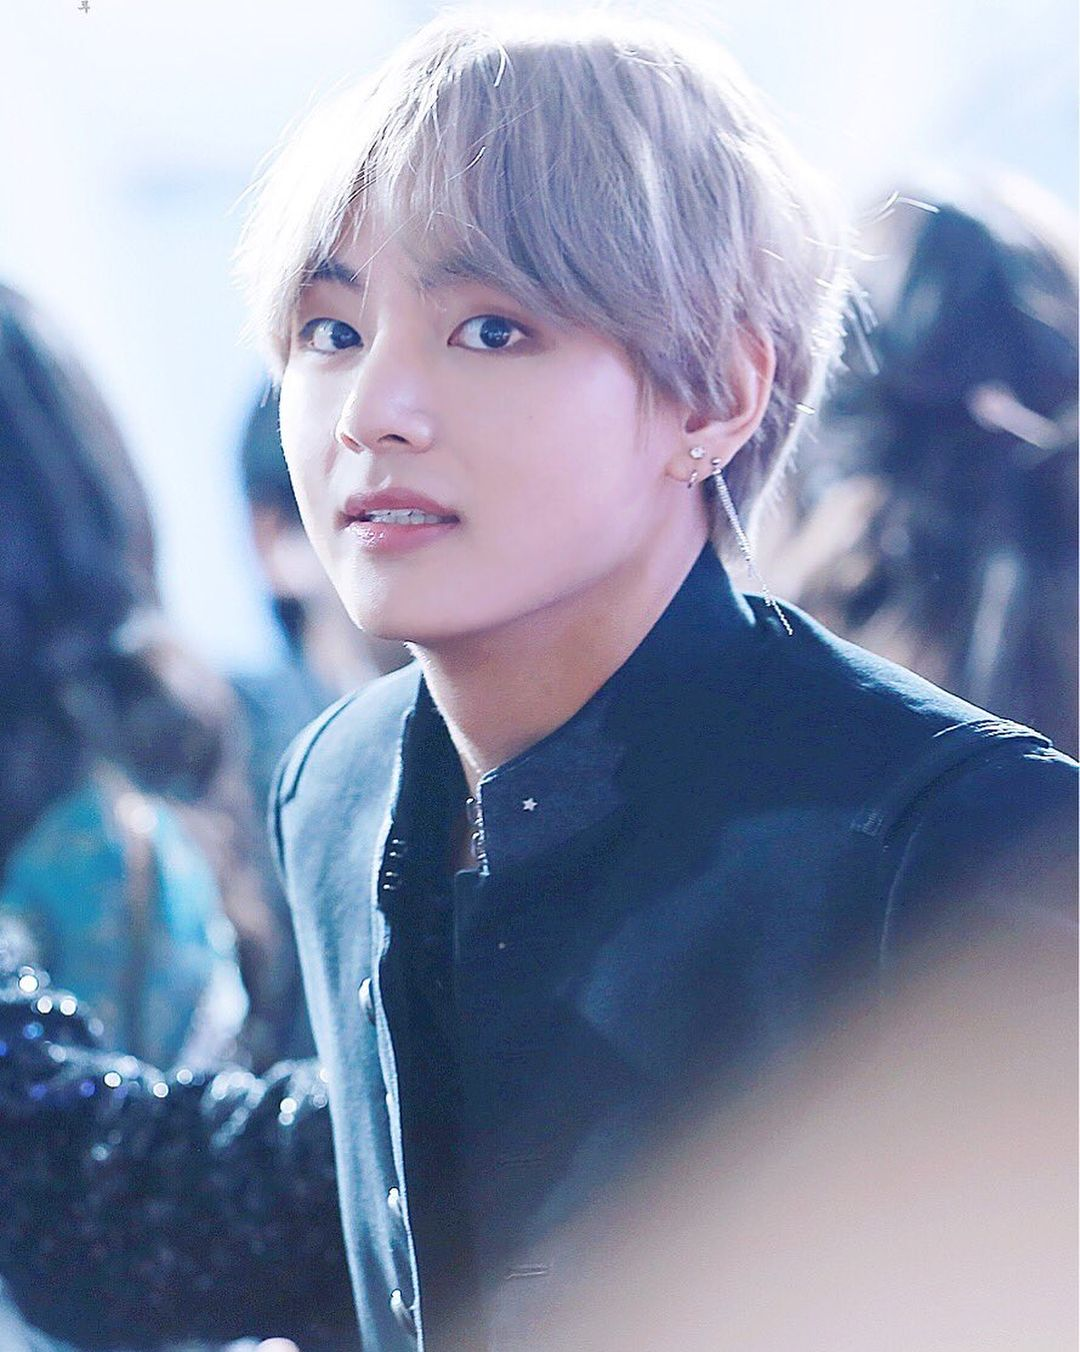 Top 10 Most Handsome K Pop Male Idols 2021 Taehyung Bts Taehyung Kim Taehyung